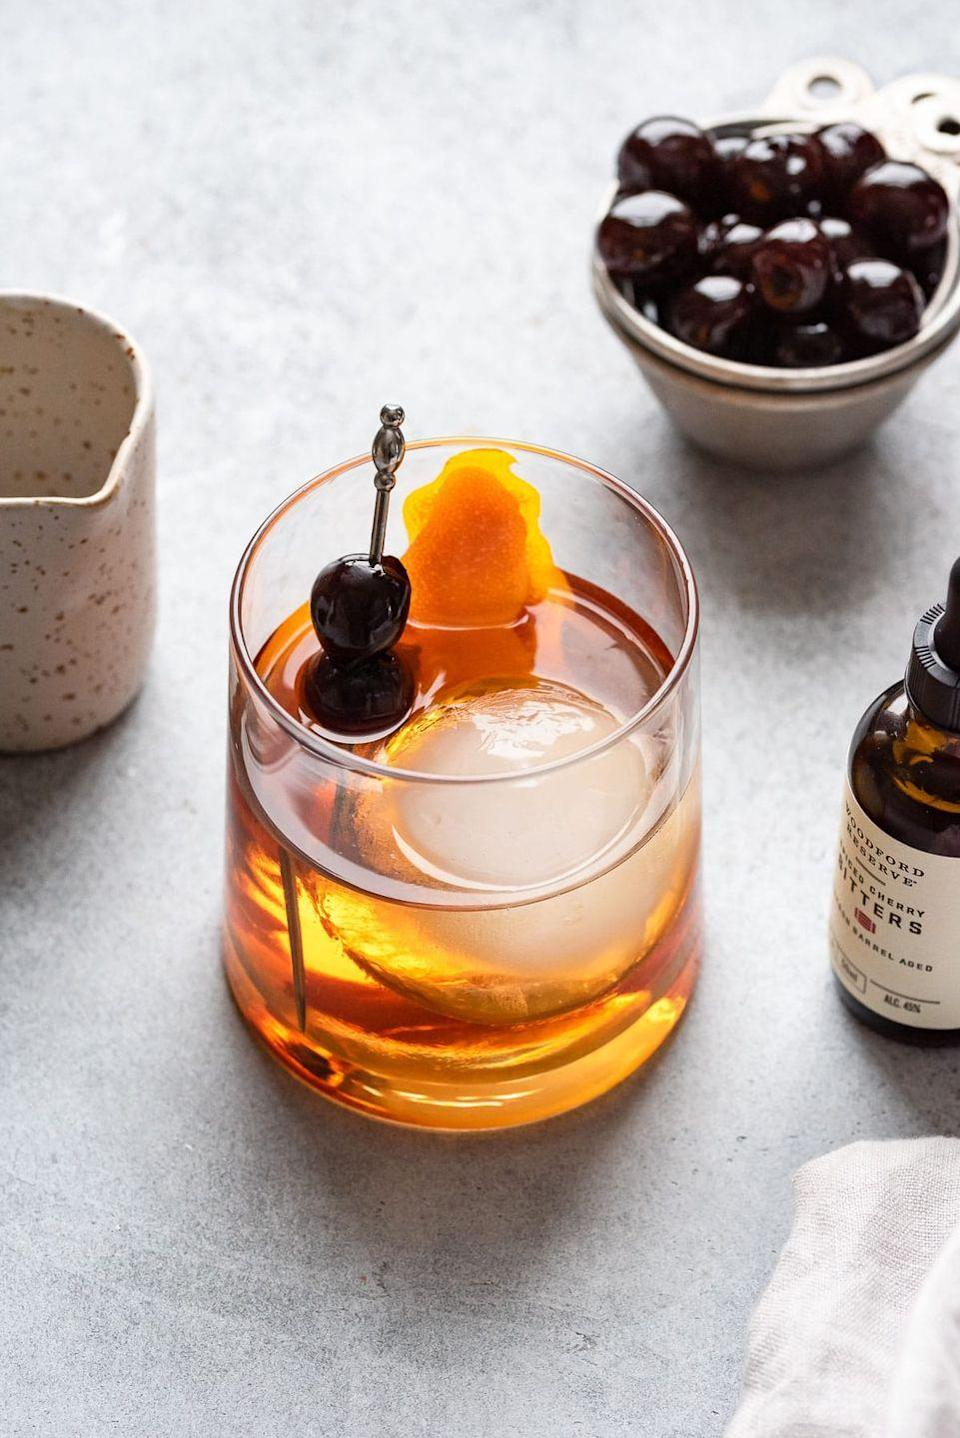 """<p>Give the original old fashioned cocktail an autumnal twist by adding maple syrup! If you want to go the extra mile, heat the orange peel to make a burnt orange garnish. </p><p><strong>Get the recipe at <a href=""""https://cookienameddesire.com/maple-old-fashioned/"""" rel=""""nofollow noopener"""" target=""""_blank"""" data-ylk=""""slk:A Cookie Named Desire"""" class=""""link rapid-noclick-resp"""">A Cookie Named Desire</a>. </strong></p><p><a class=""""link rapid-noclick-resp"""" href=""""https://go.redirectingat.com?id=74968X1596630&url=https%3A%2F%2Fwww.walmart.com%2Fsearch%2F%3Fquery%3Dtoothpicks&sref=https%3A%2F%2Fwww.thepioneerwoman.com%2Fholidays-celebrations%2Fg36982659%2Fhalloween-drink-recipes%2F"""" rel=""""nofollow noopener"""" target=""""_blank"""" data-ylk=""""slk:SHOP TOOTHPICKS"""">SHOP TOOTHPICKS</a></p>"""